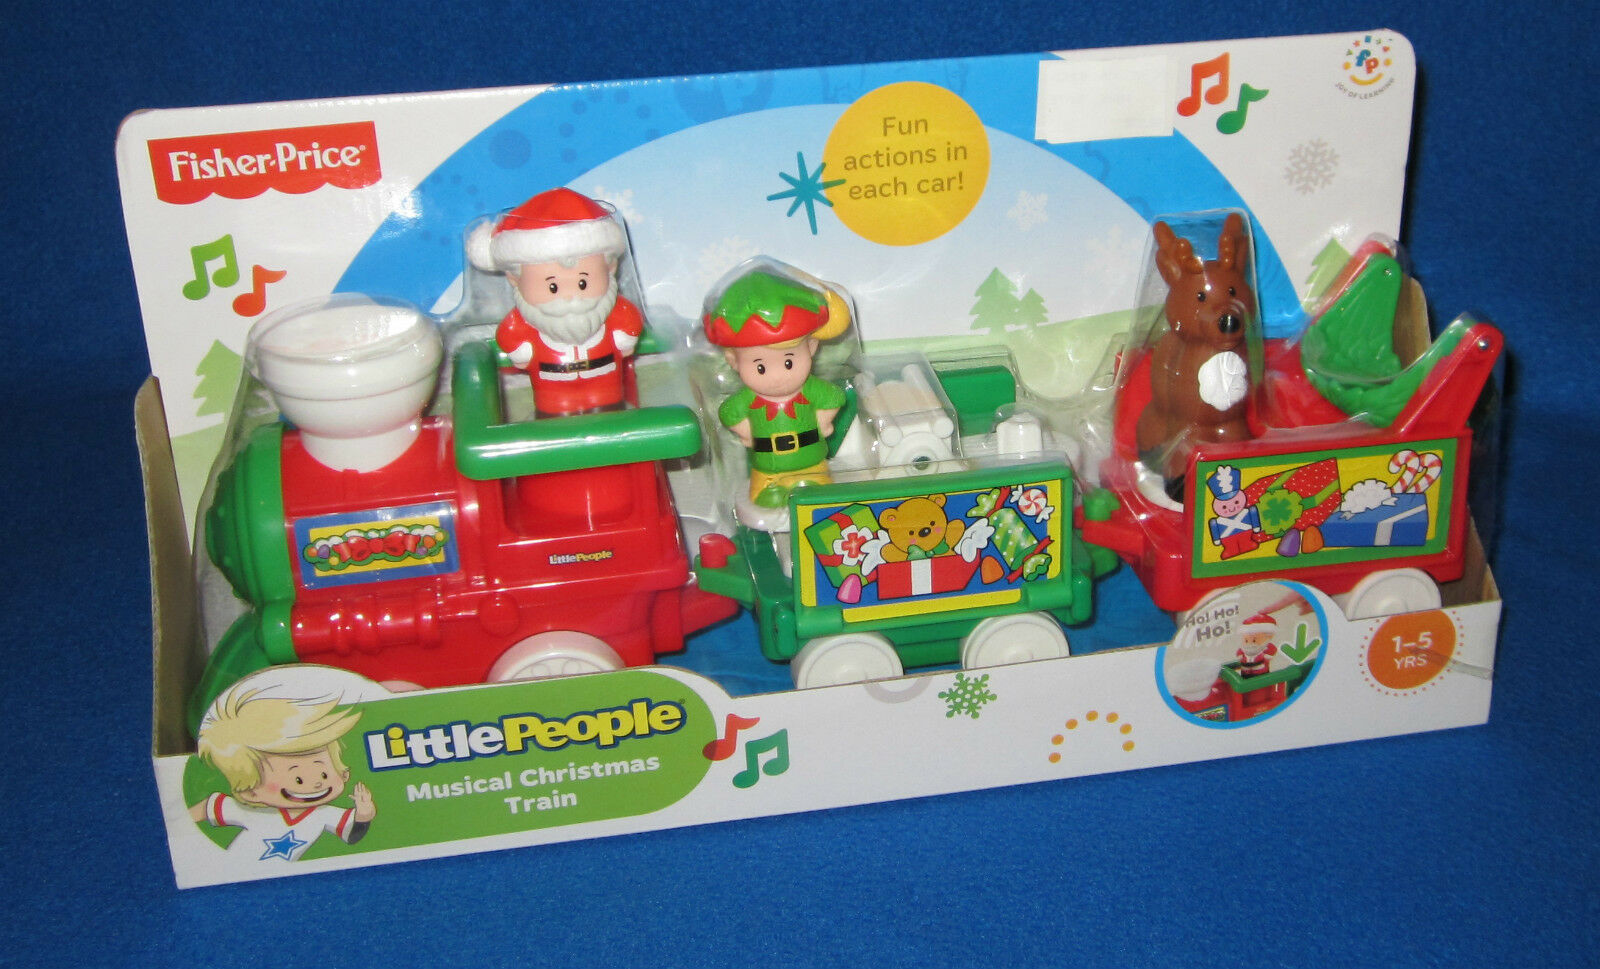 Fisher Price Little People Musical Musical Musical Christmas Holiday Train NEW 259992